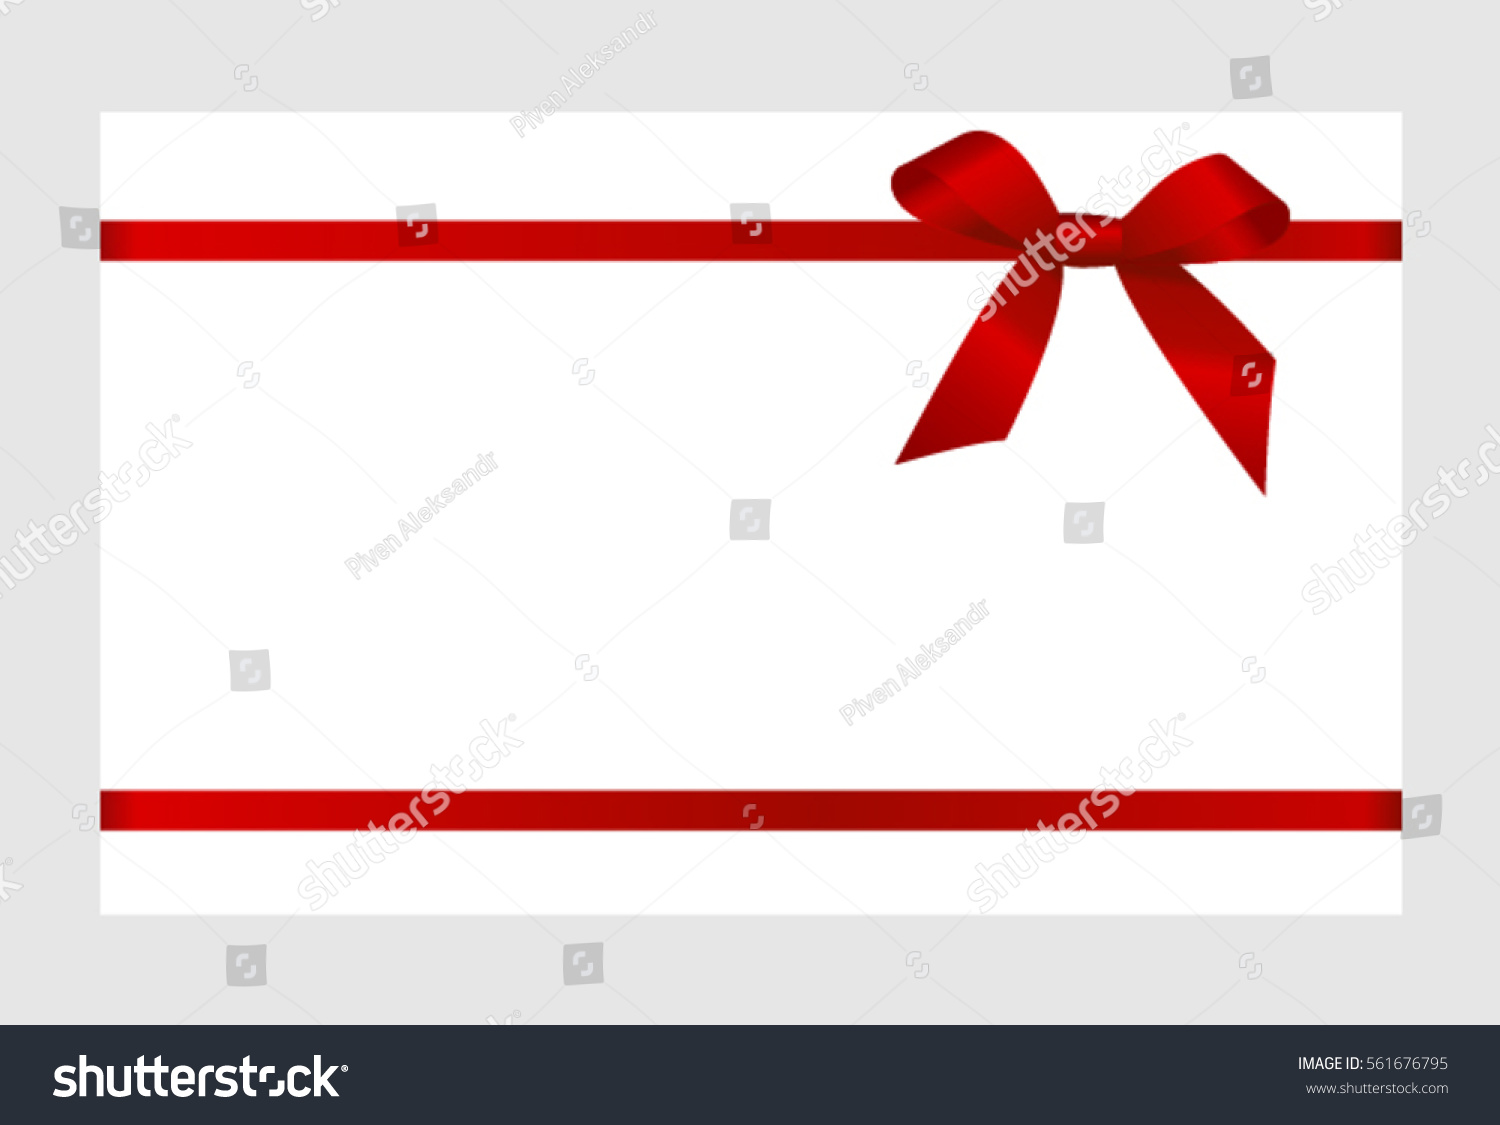 gift card red ribbon bow on stock vector shutterstock gift card red ribbon and a bow on white background gift voucher template